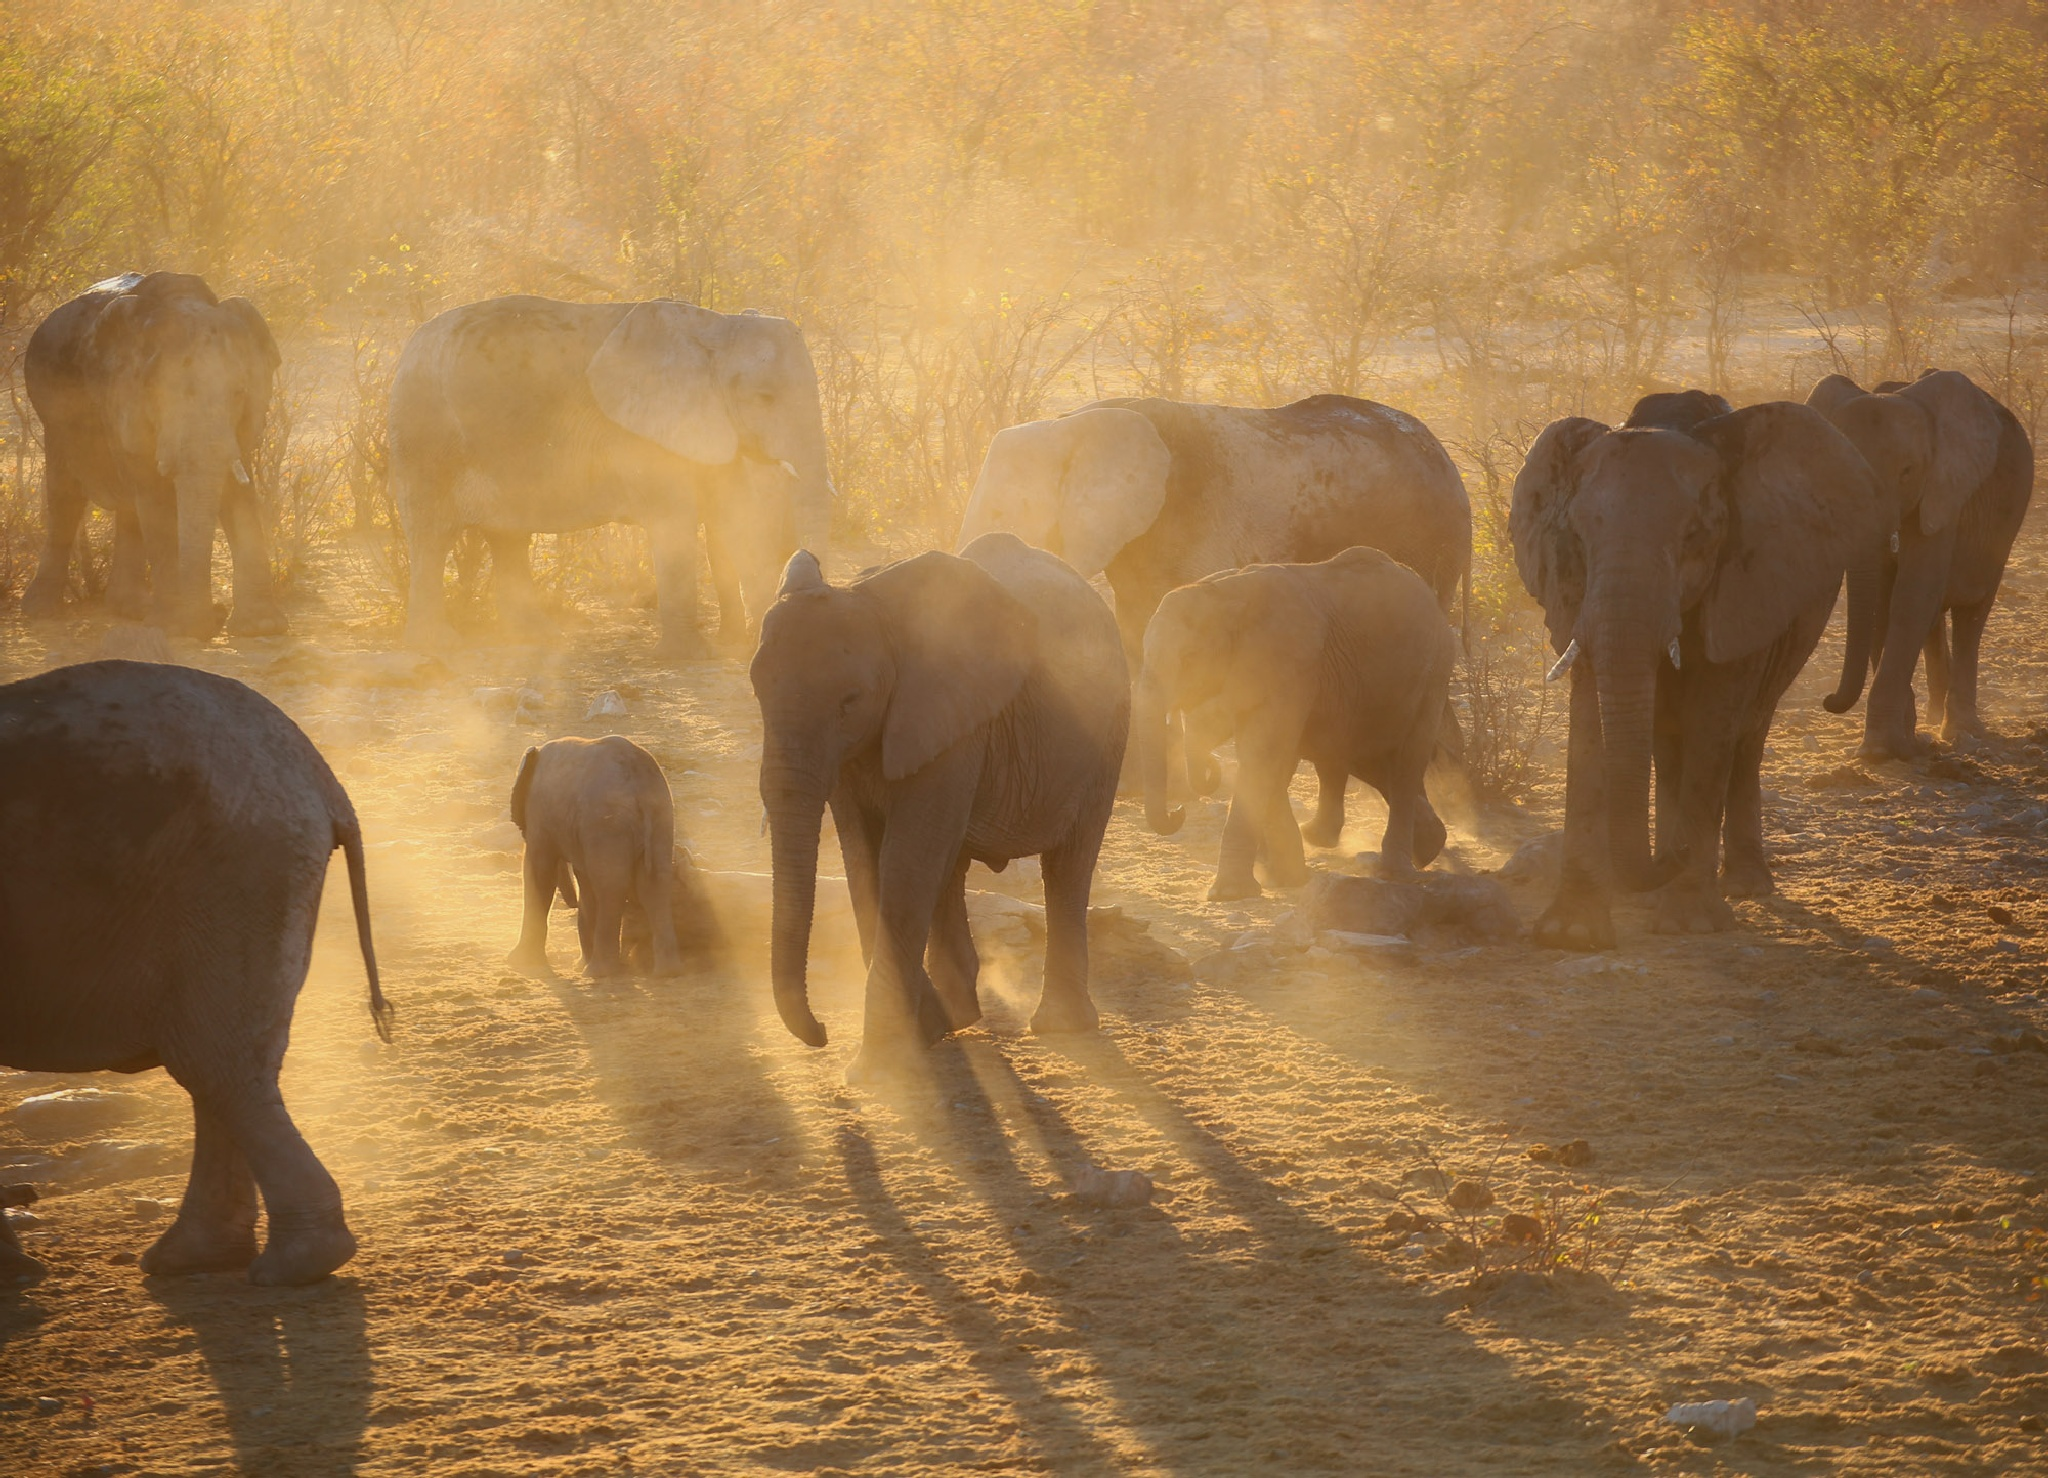 Dusty elephant sunset by Kjersti Holmang